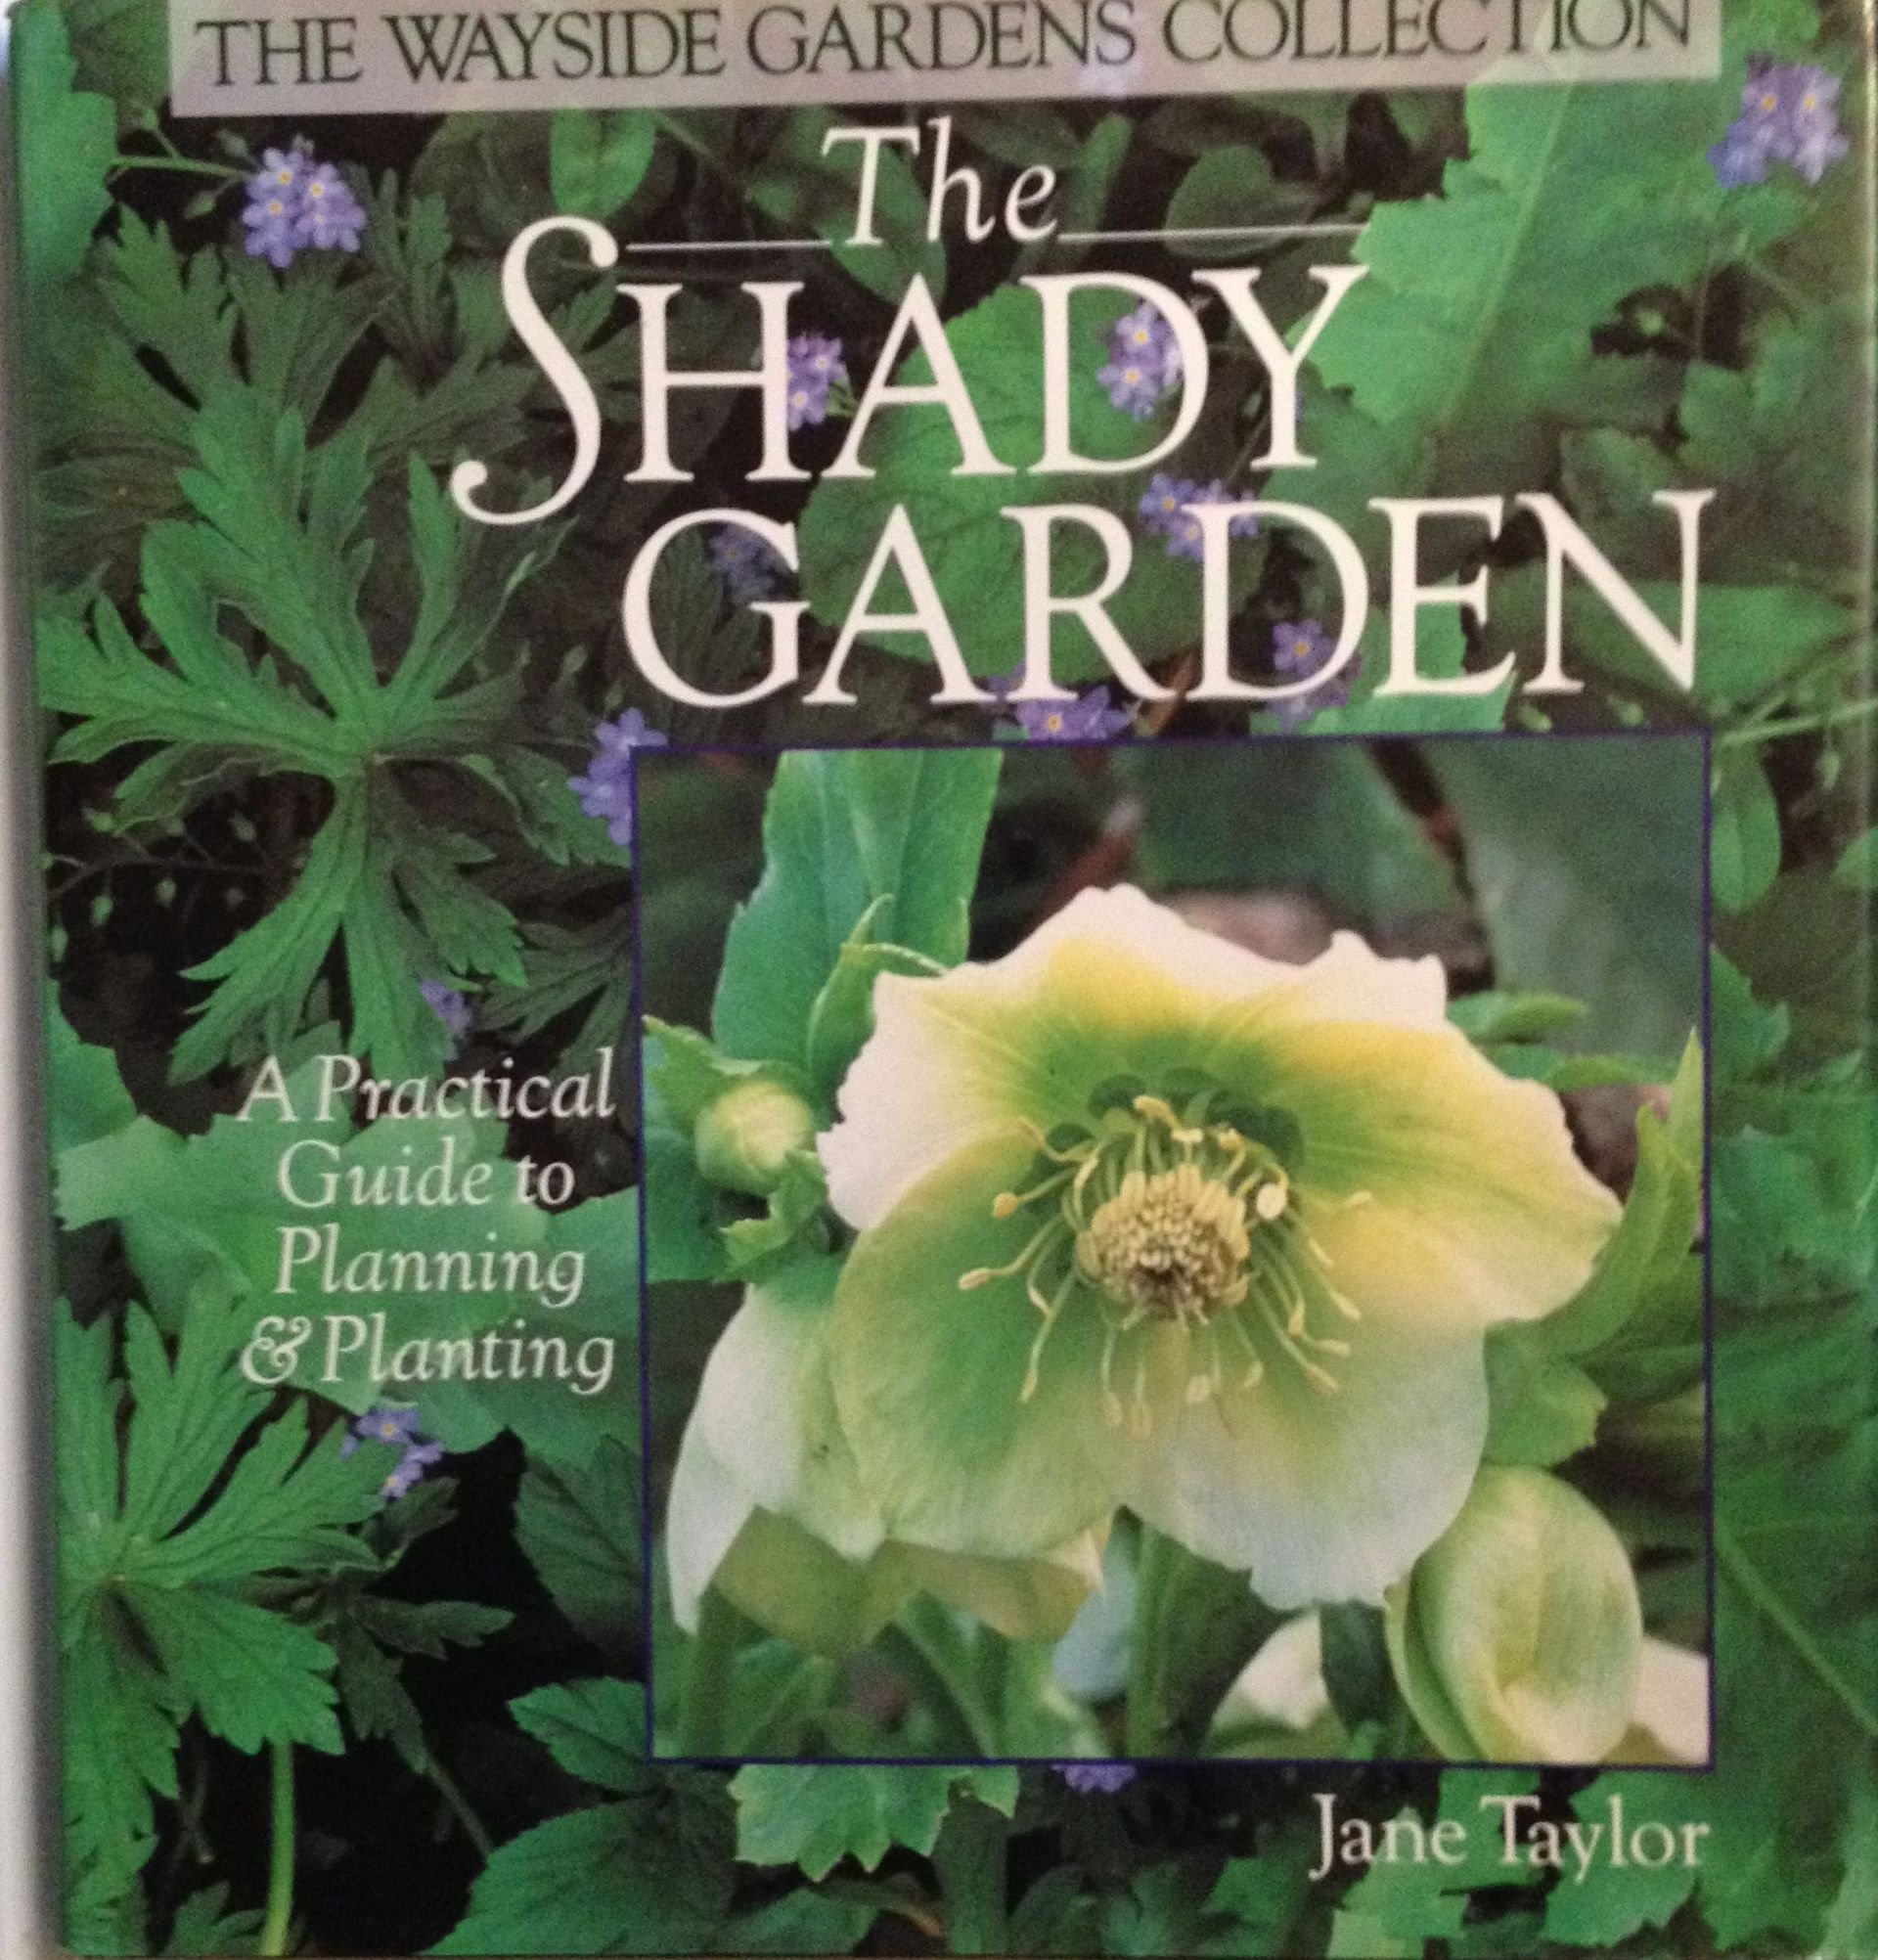 The Shady Garden: A Practical Guide To Planning U0026 Planting (Wayside Gardens  Collection): Jane Taylor: 9780806908410: Amazon.com: Books